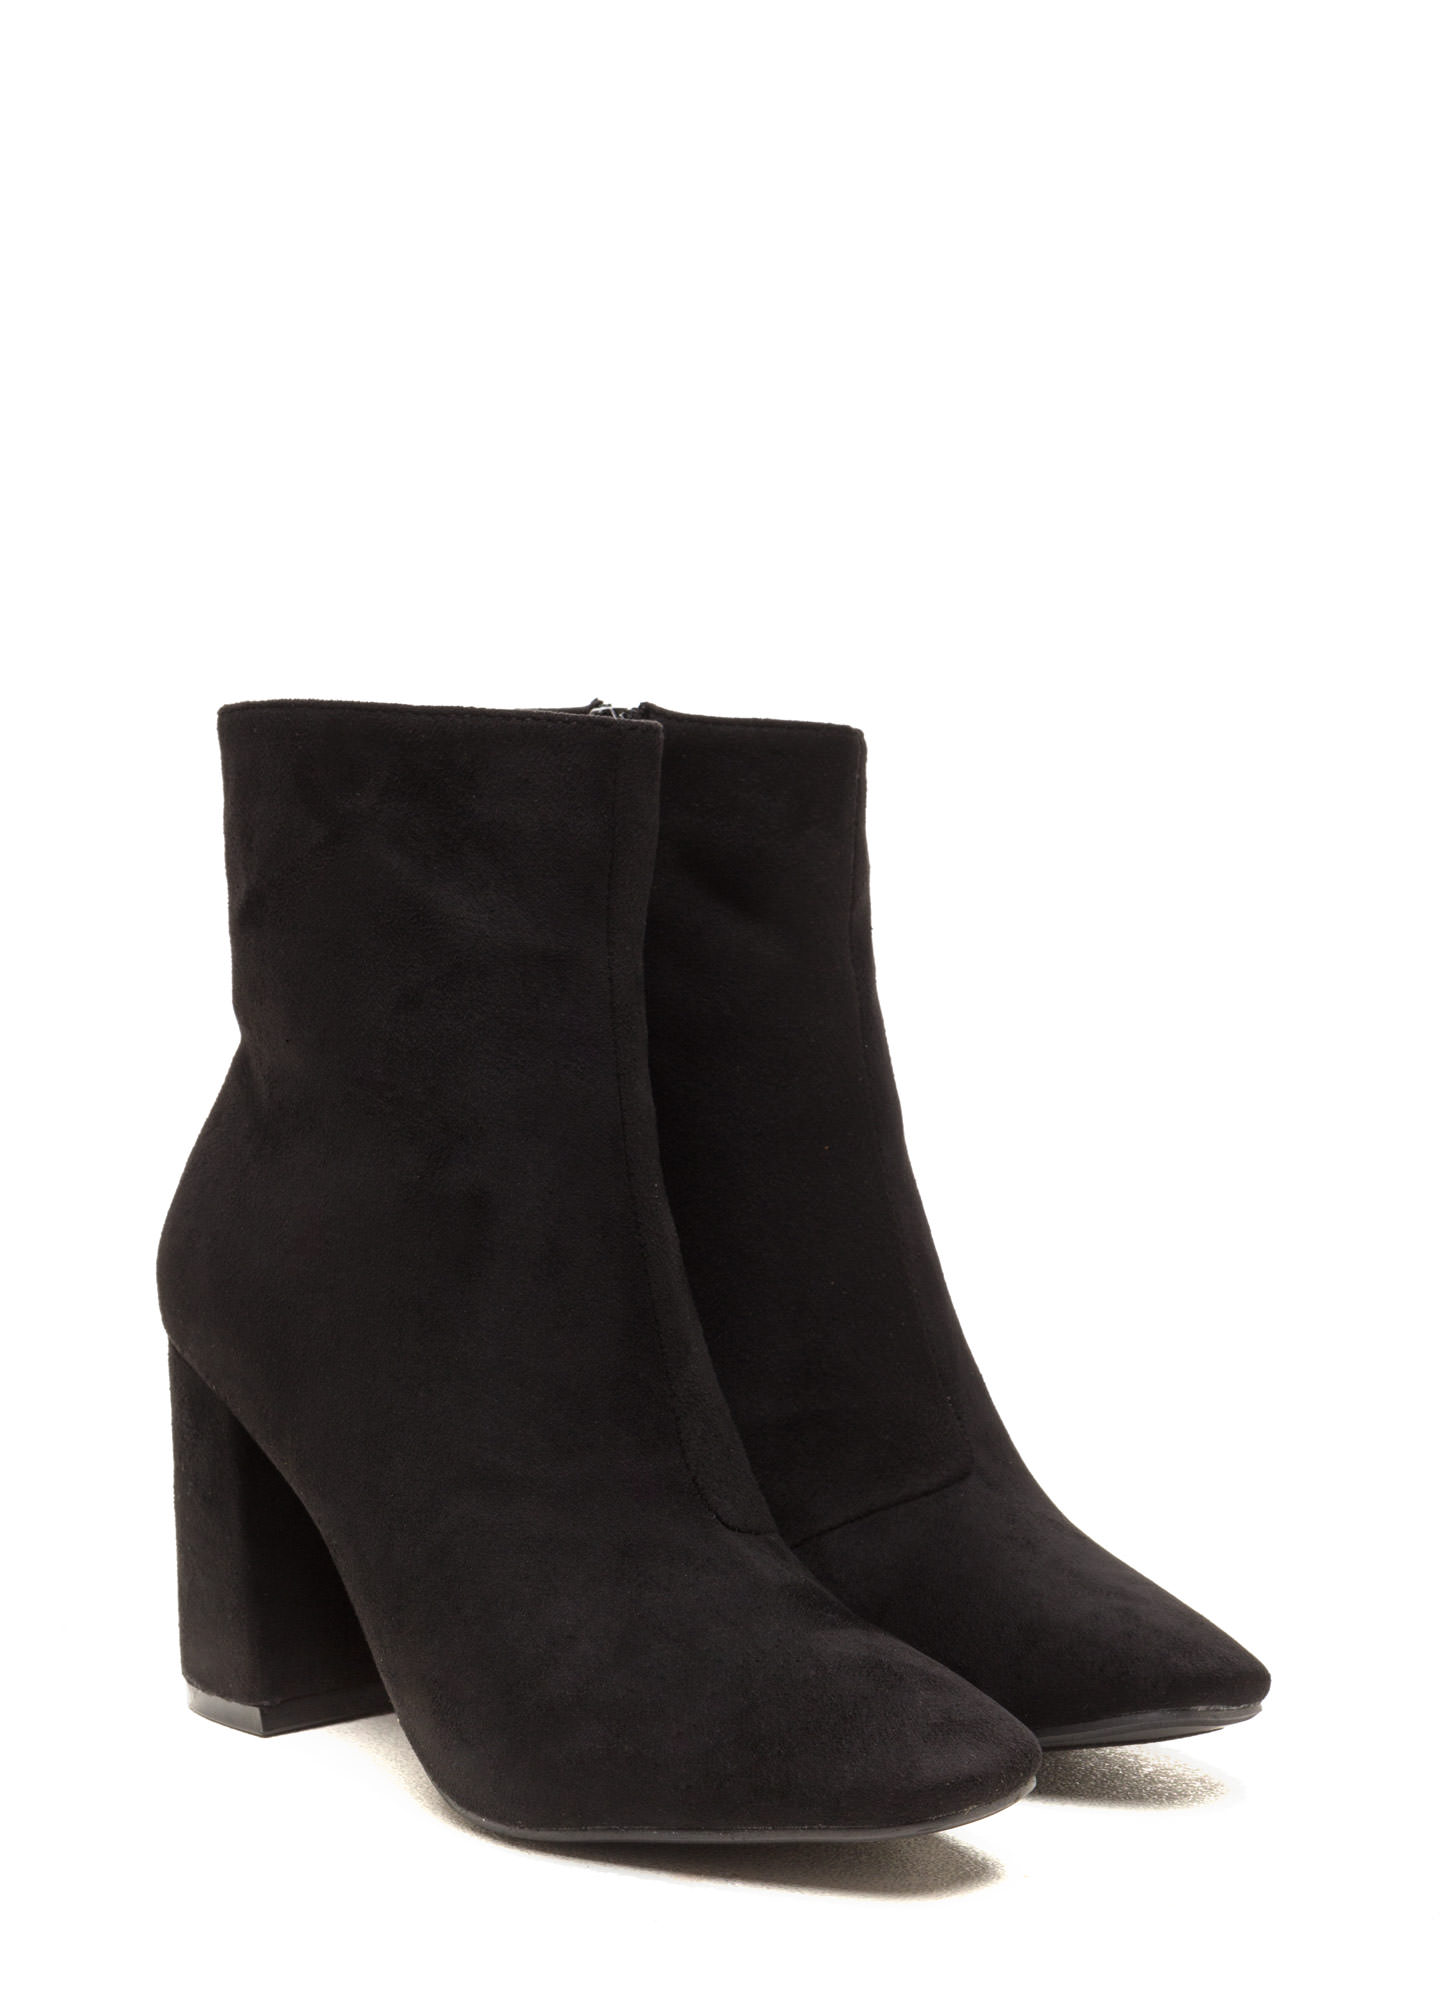 All Squared Away Faux Suede Booties BLACK